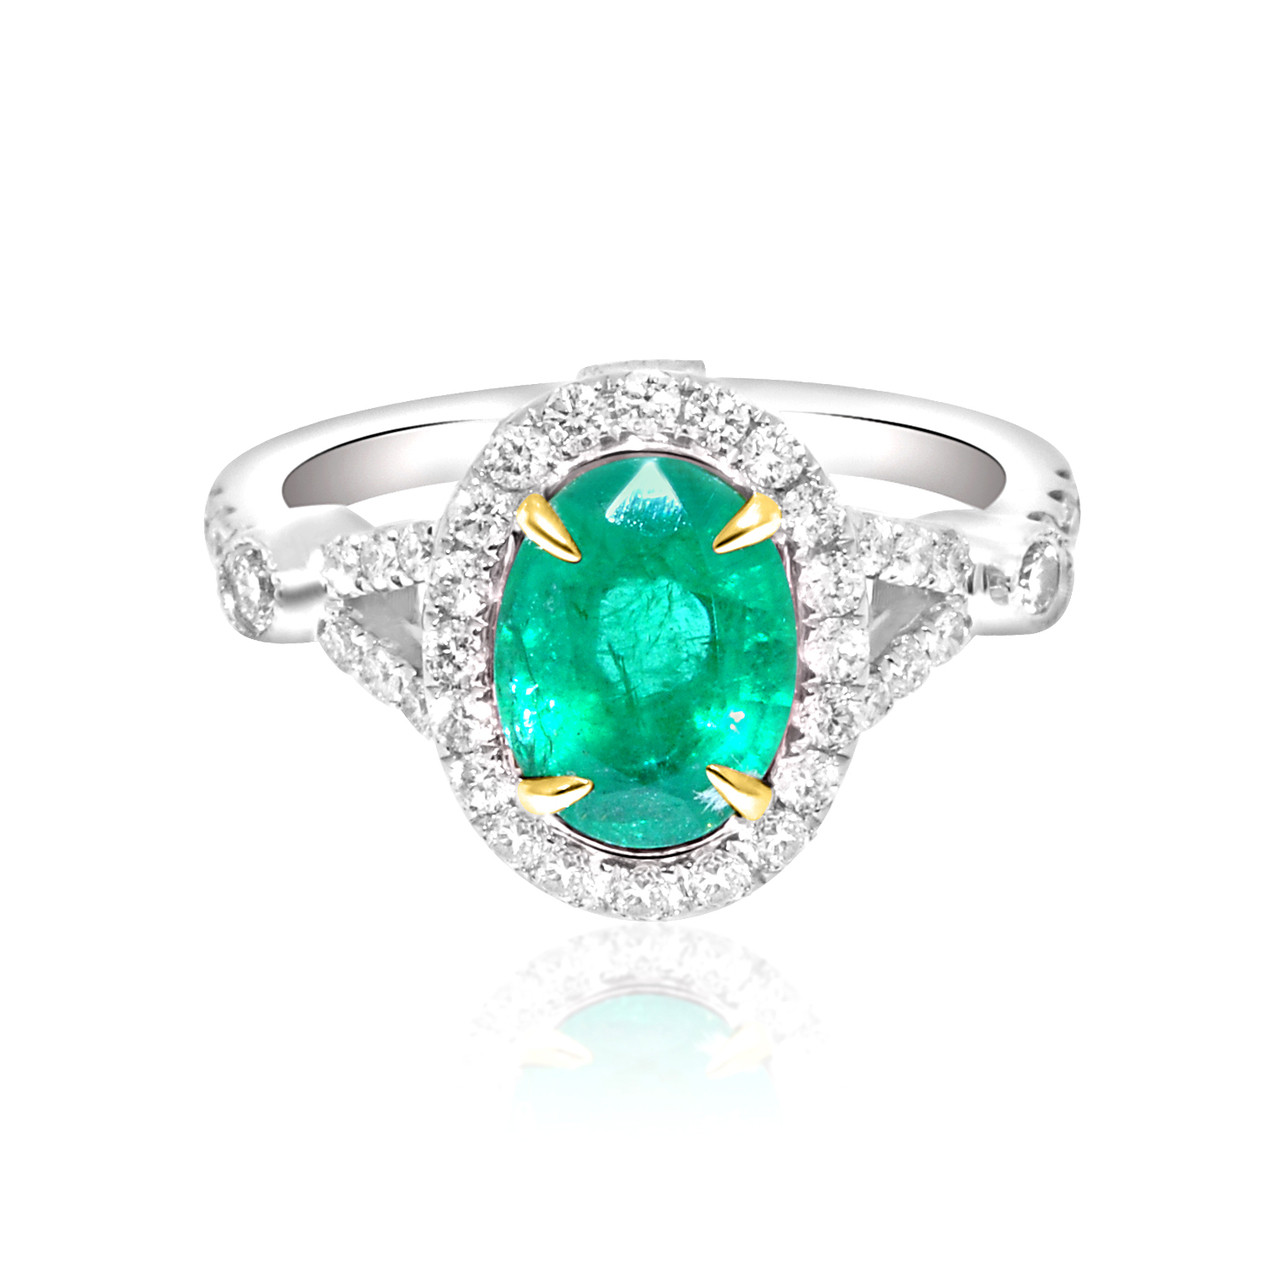 66ef553eb46292 14K White Gold Diamond Emerald Ring : Best Price from Shin Brothers